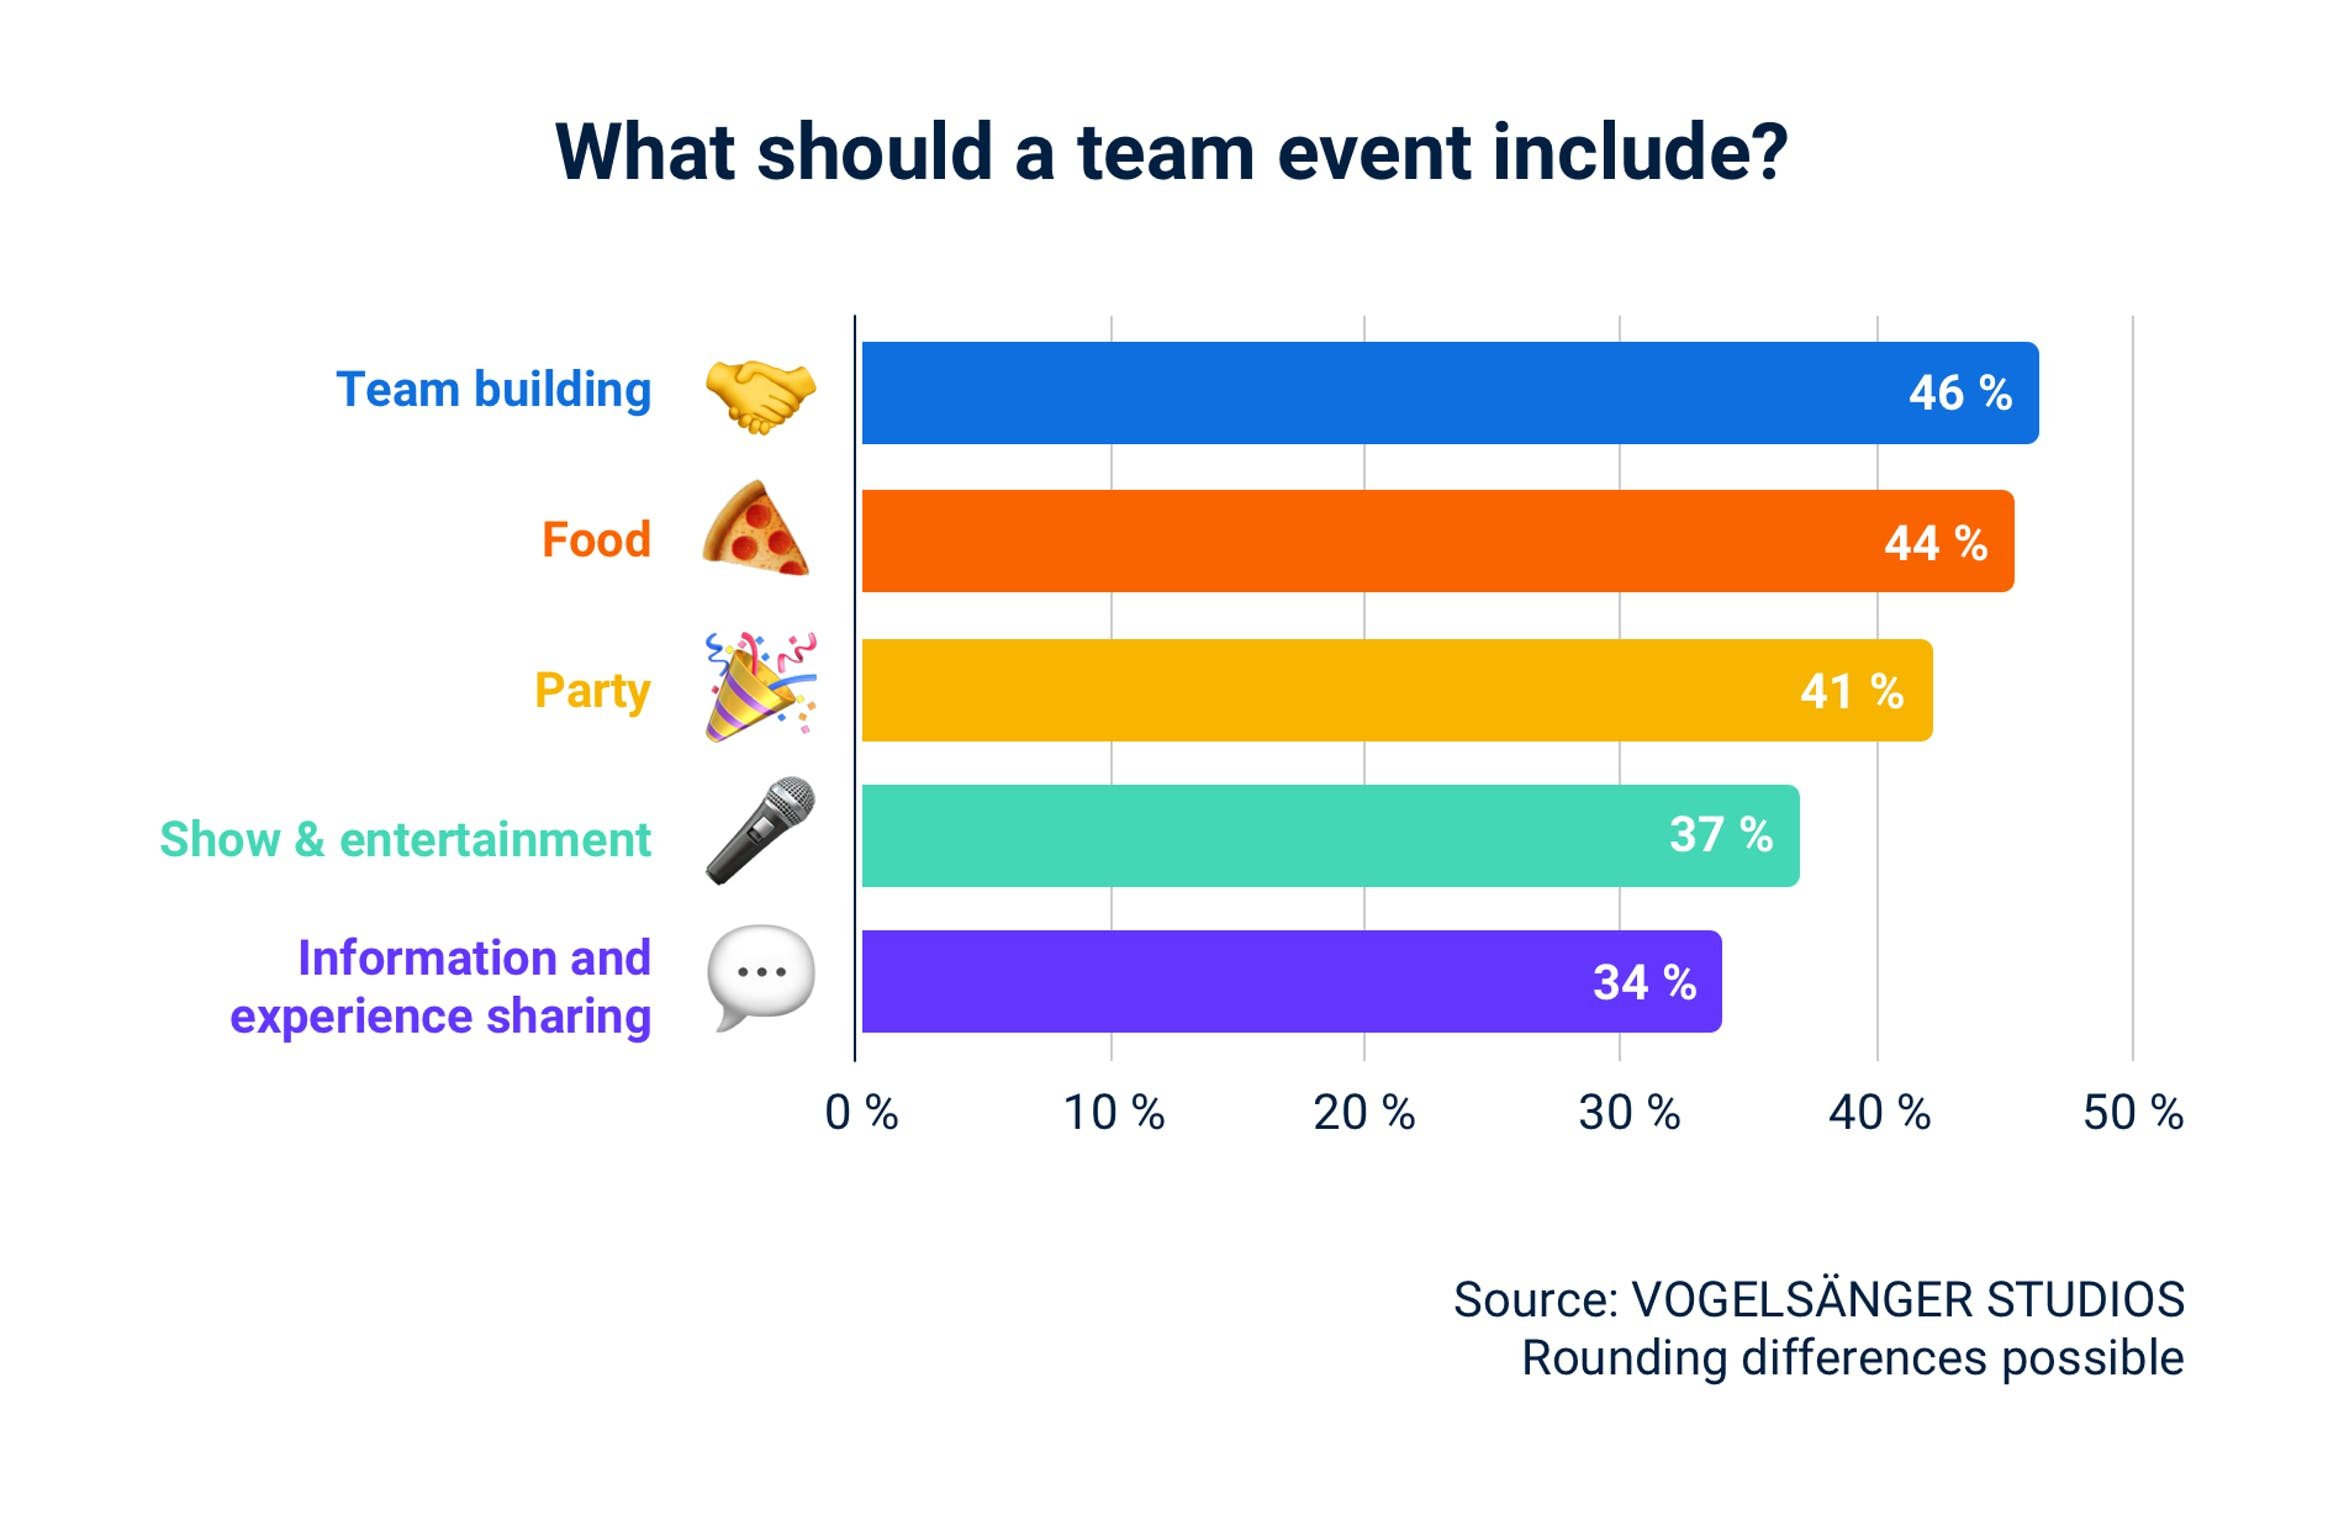 What should a team event include?